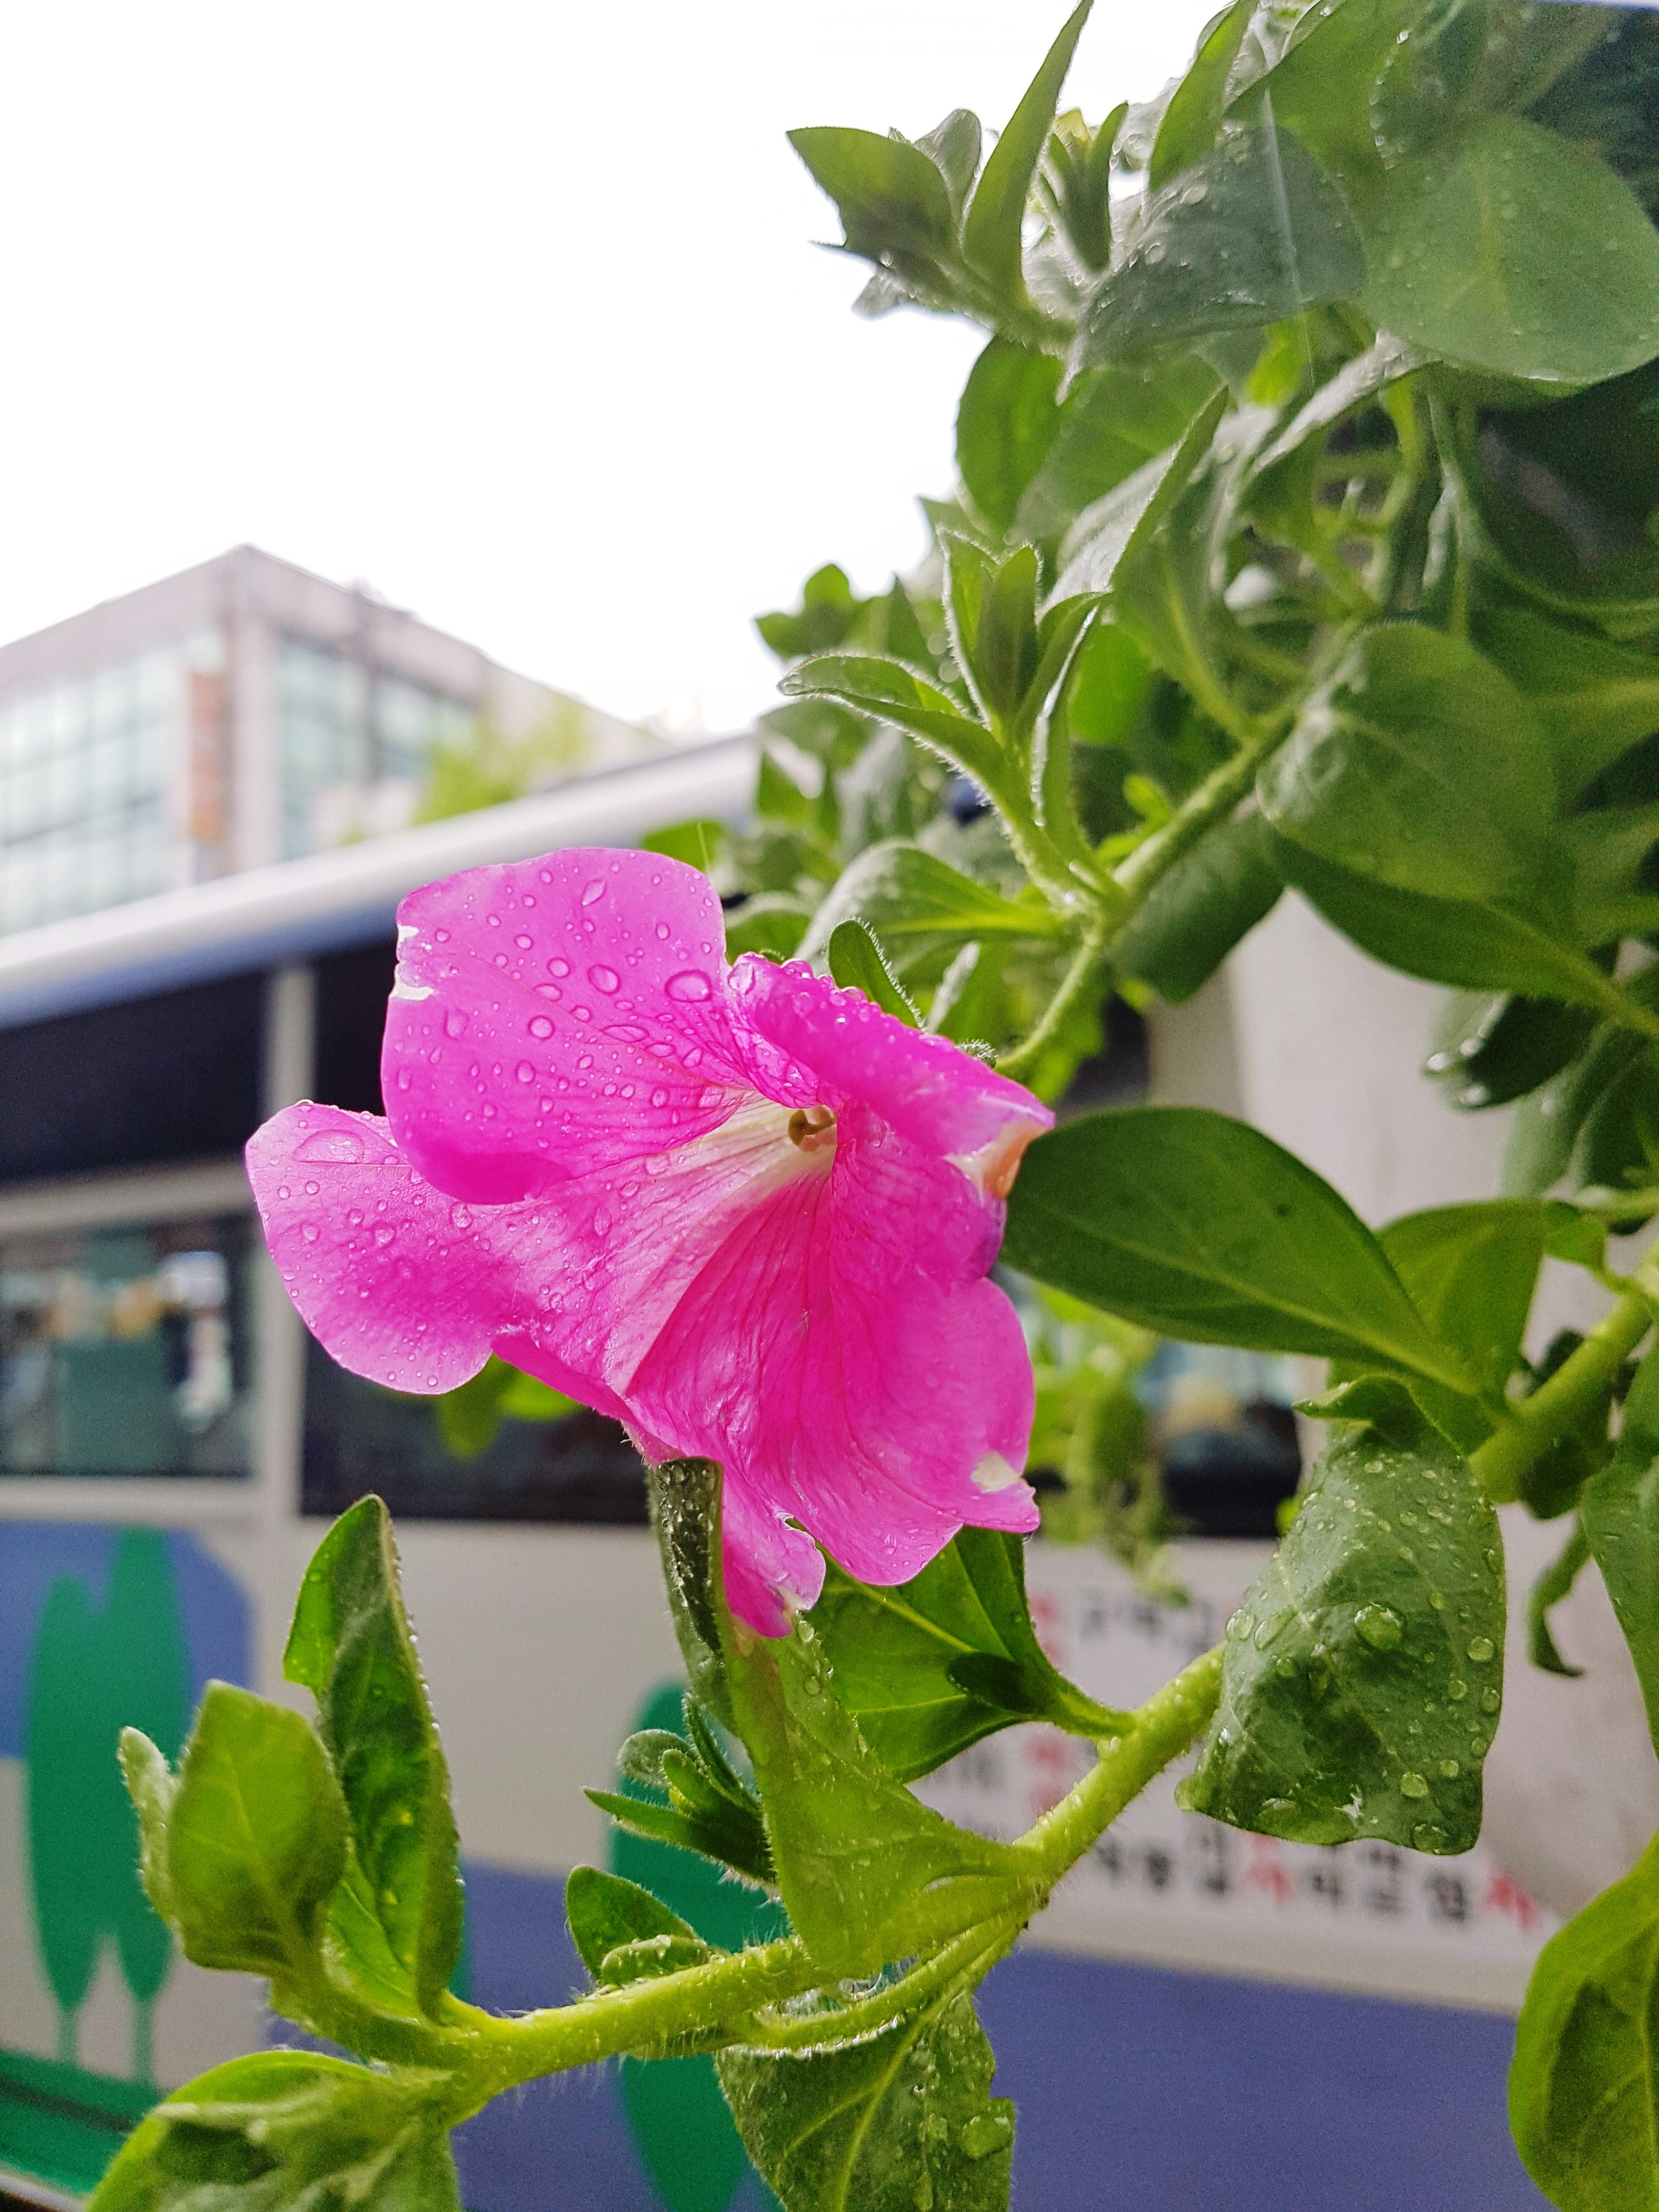 flower, nature, pink color, growth, leaf, freshness, fragility, flower head, plant, beauty in nature, petal, no people, close-up, wet, day, outdoors, building exterior, water, periwinkle, architecture